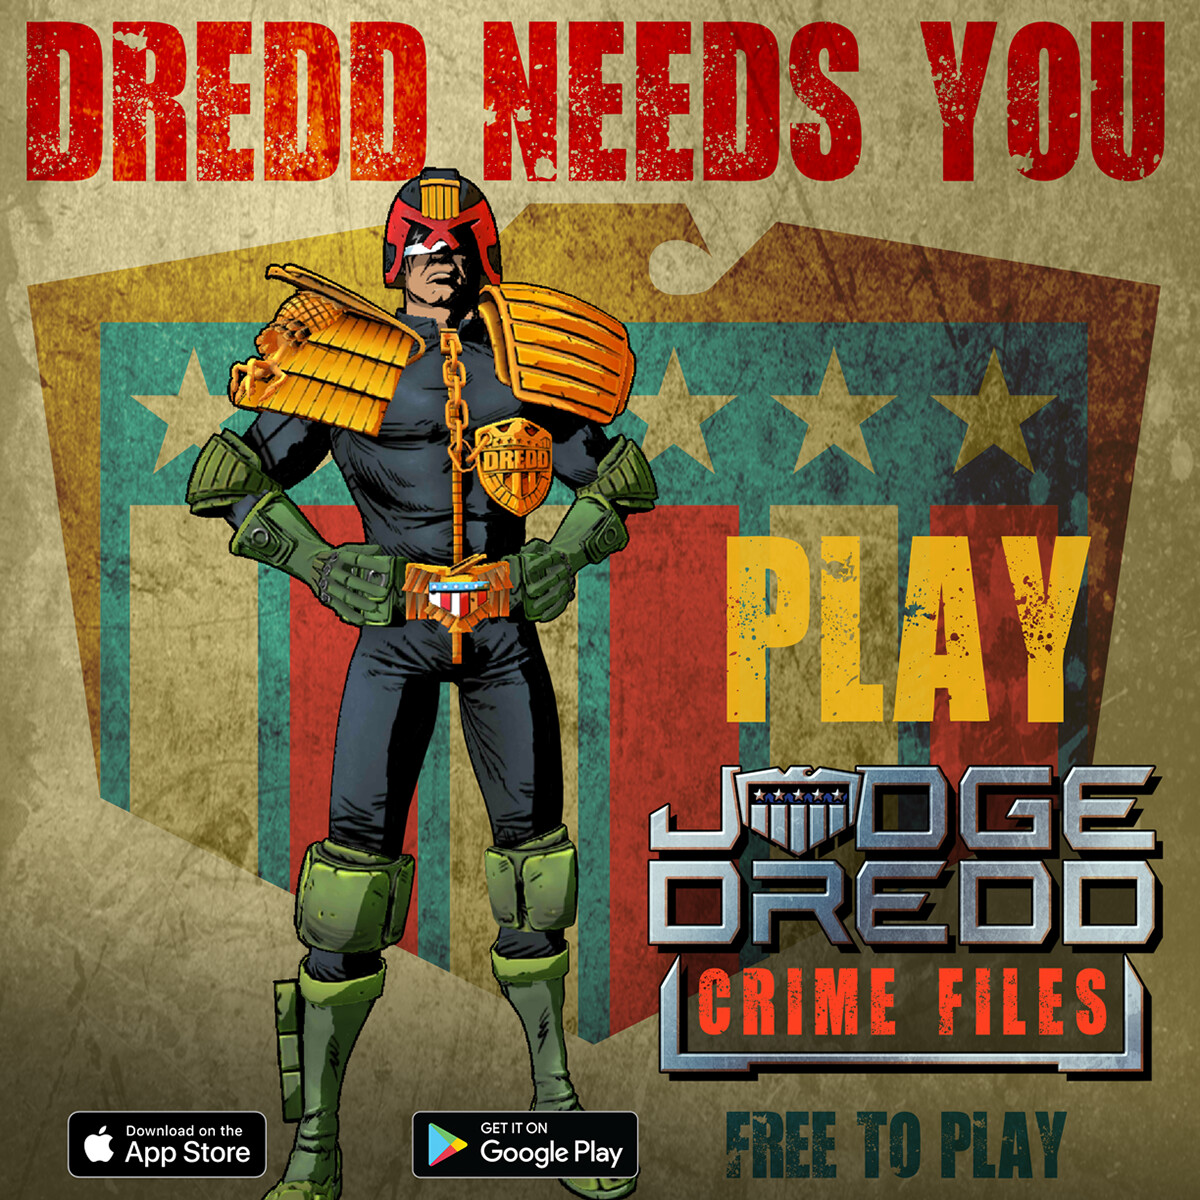 2019 - Judge Dredd: Crime Files